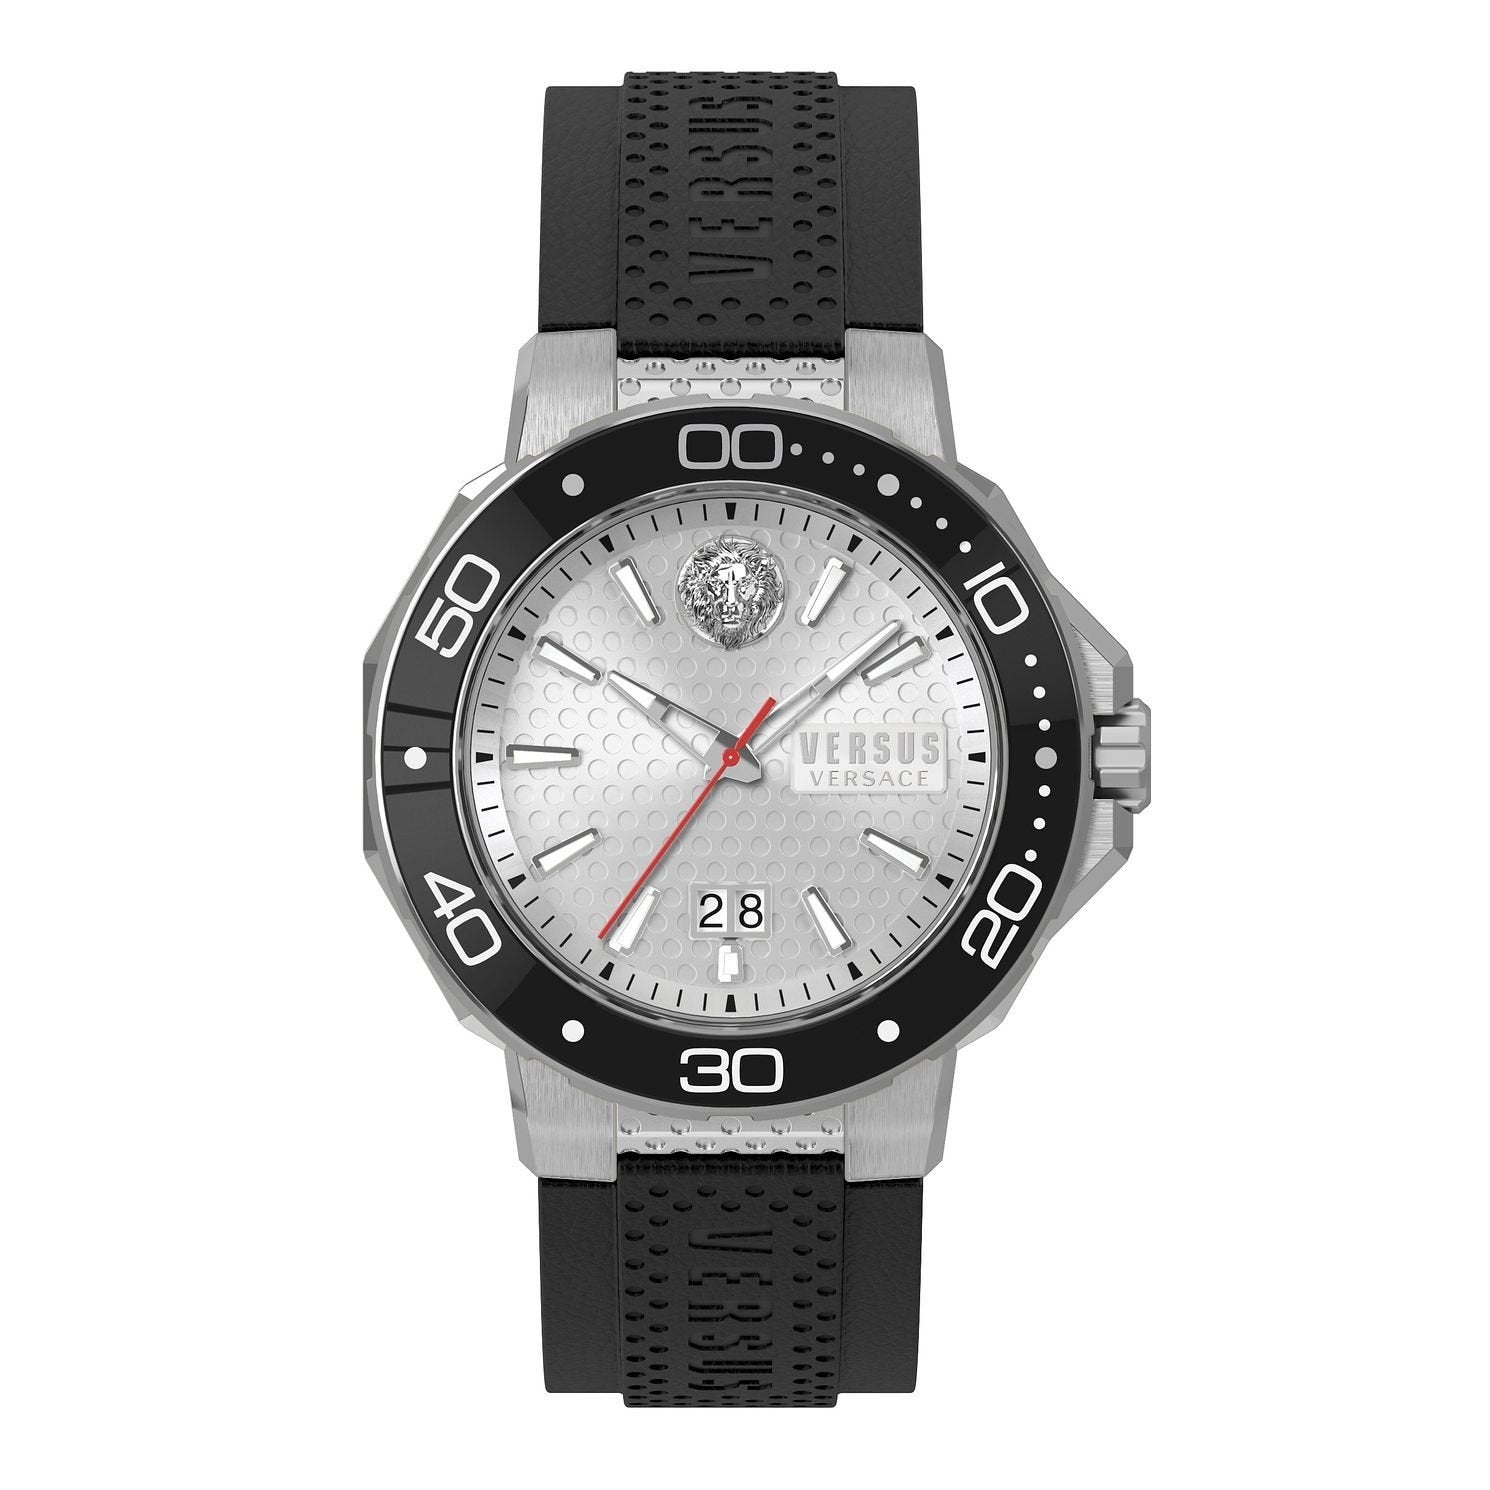 Versus Versace Kalk Bay Stainless Steel - Watches & Crystals